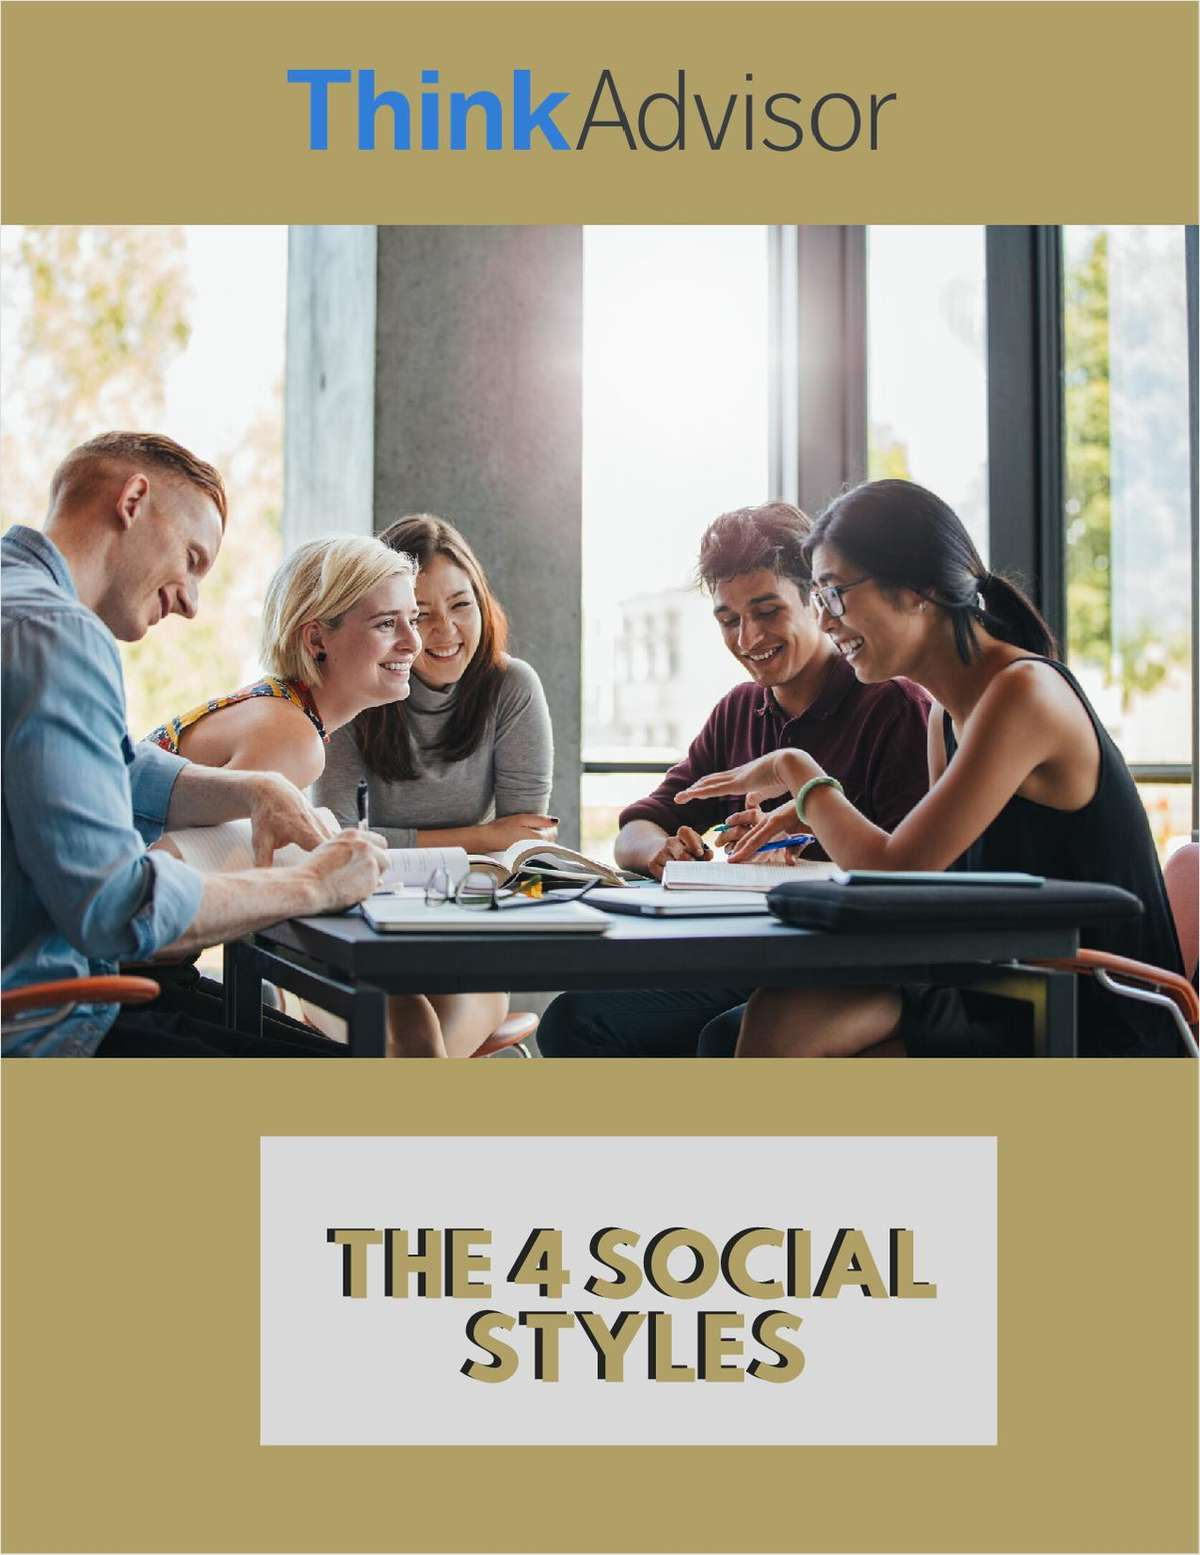 The 4 Social Styles